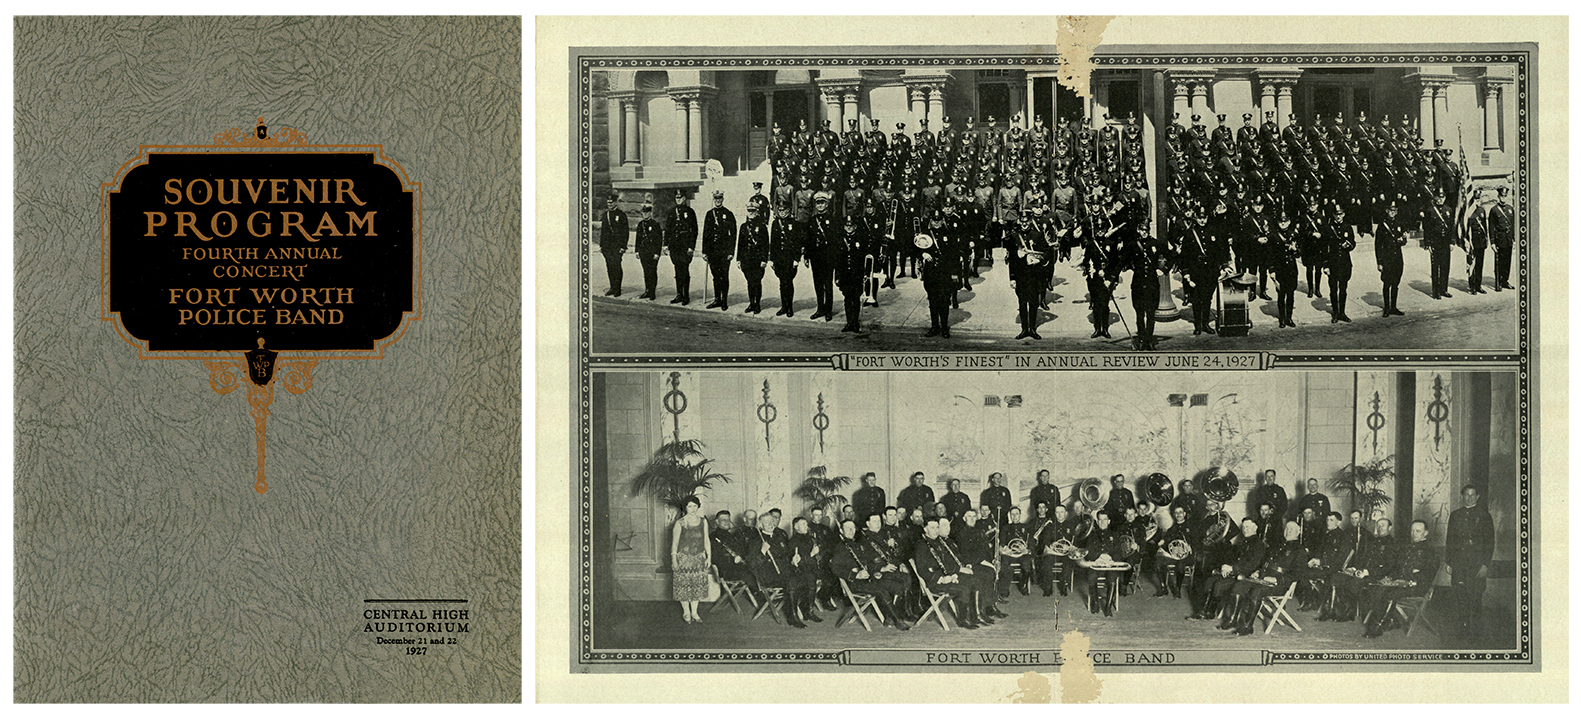 Souvenir Program: Fort Worth Police Band Fourth Annual Concert. Fort Worth, TX, 1927.